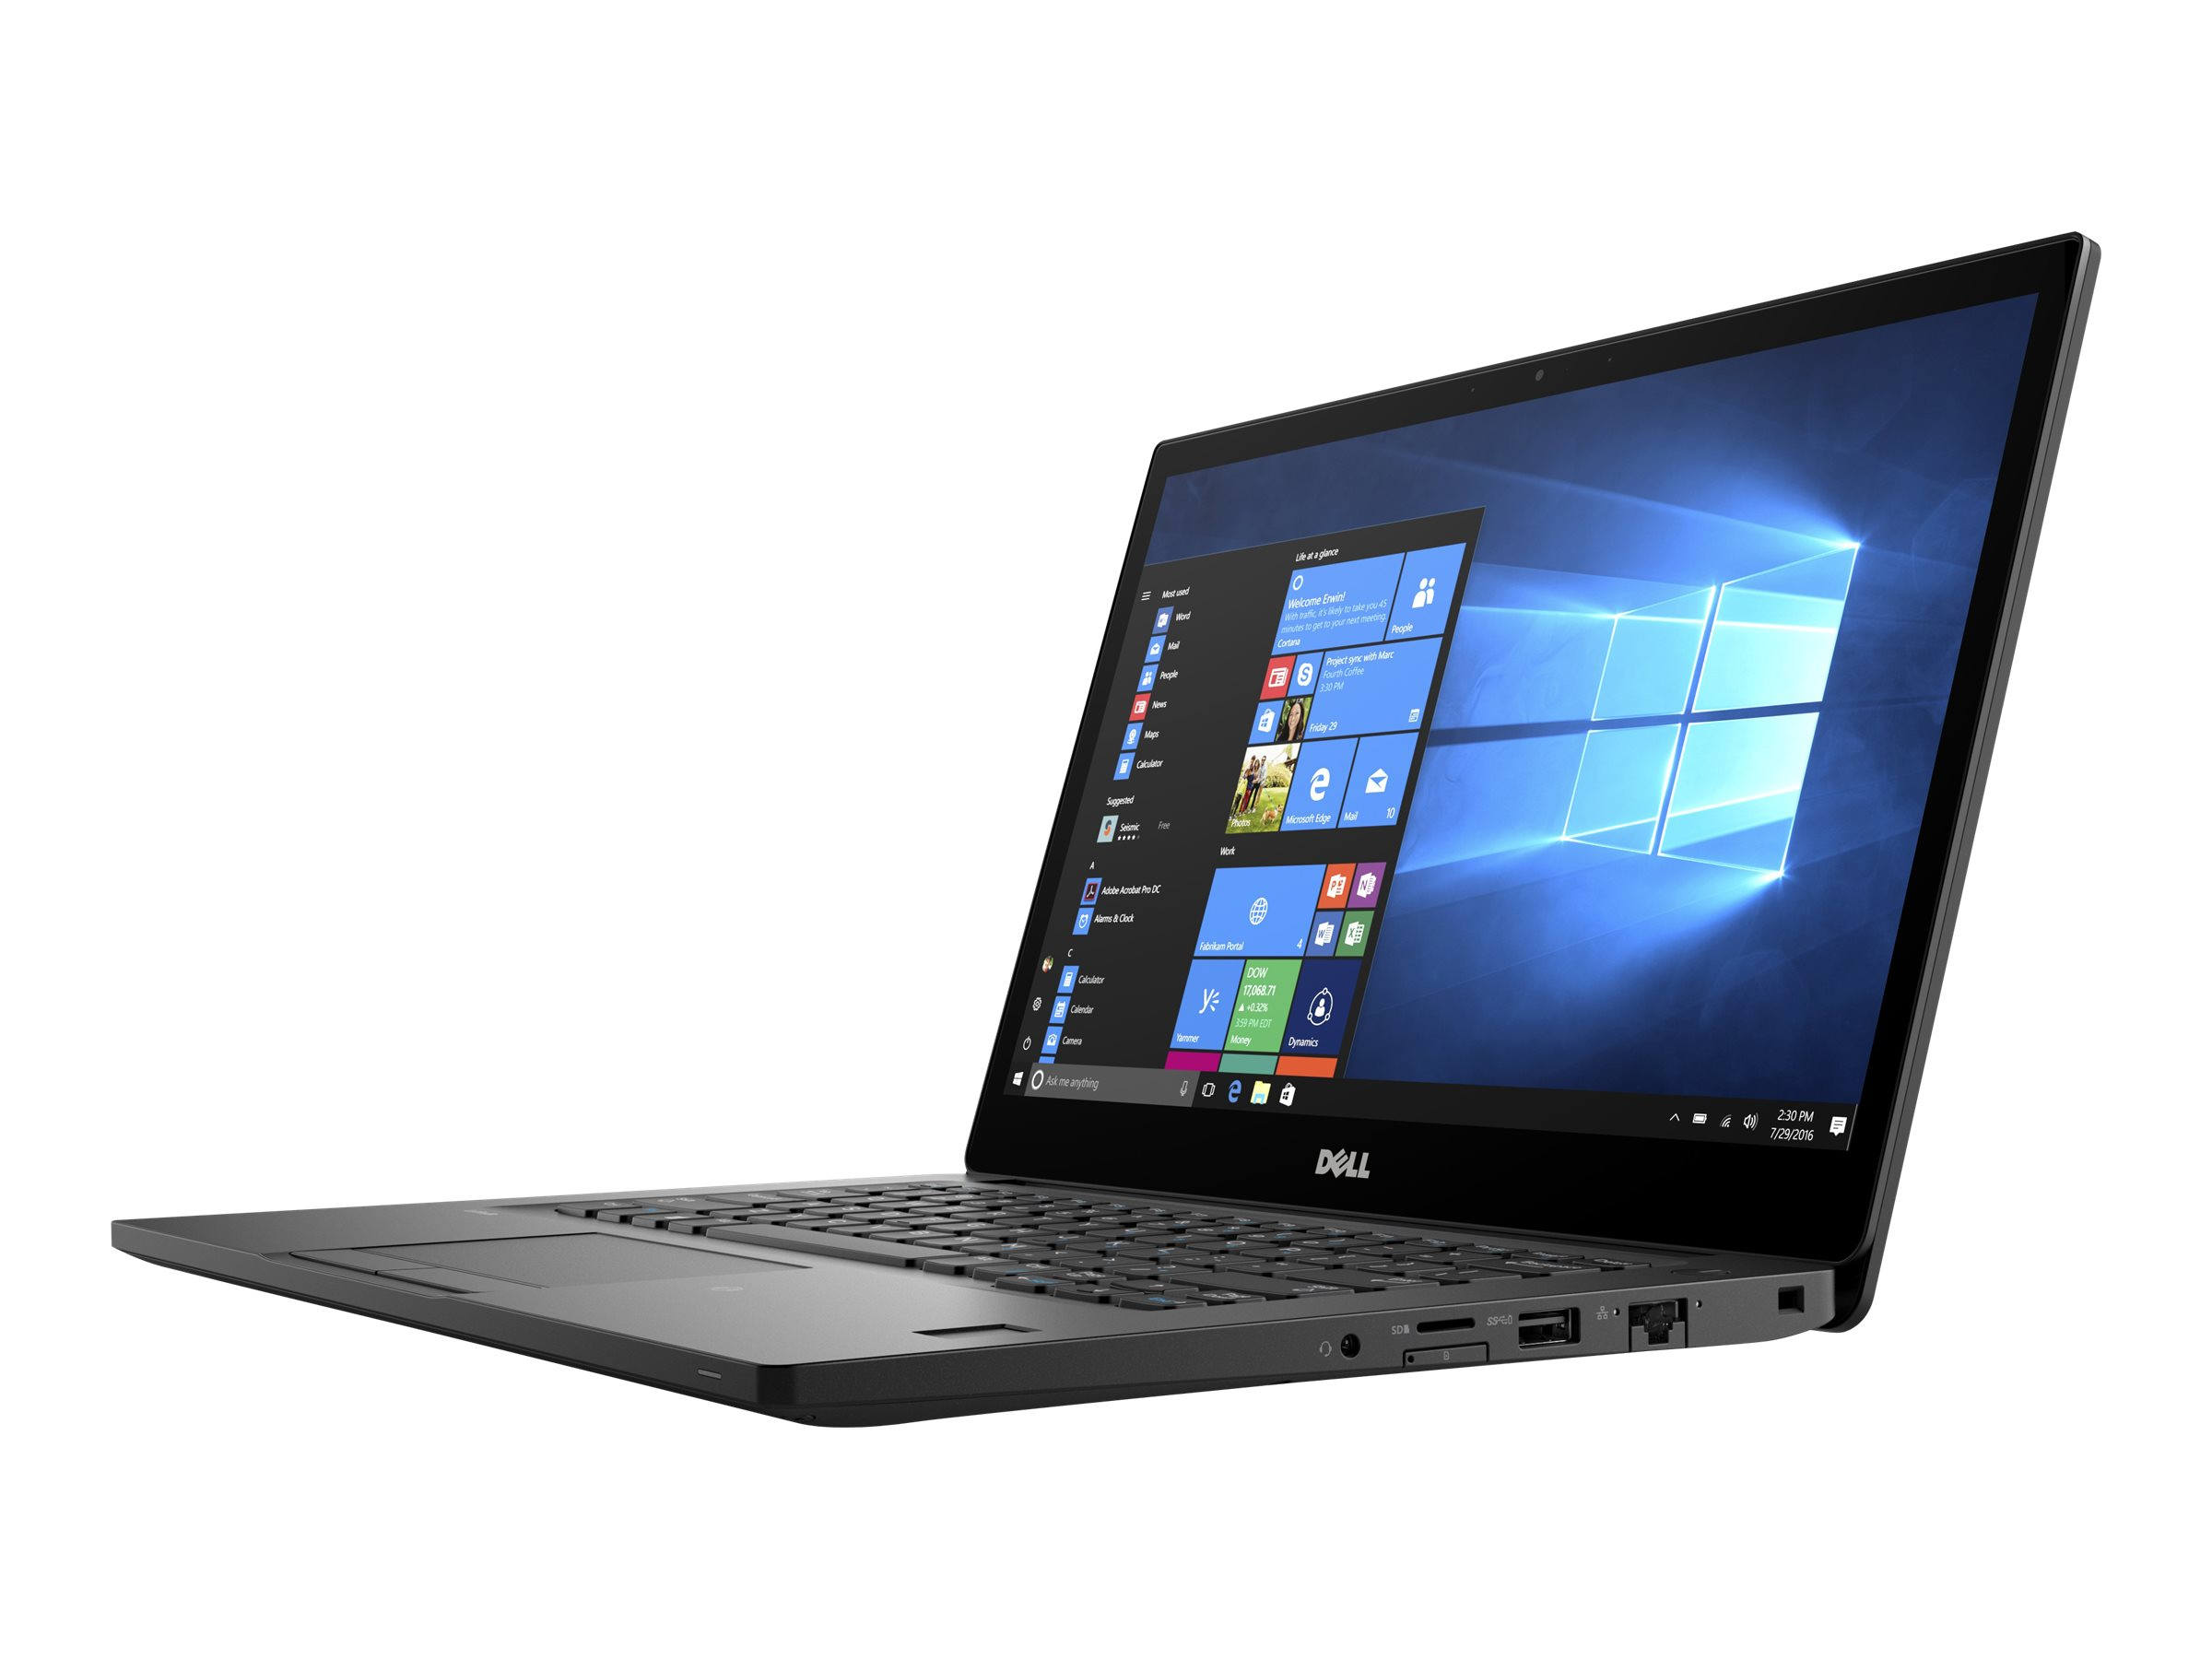 """Dell Latitude 7280 - 12.5"""" - Core i5 7300U - vPro - 8 GB RAM - 256 GB SSD - with 3-year ProSupport"""